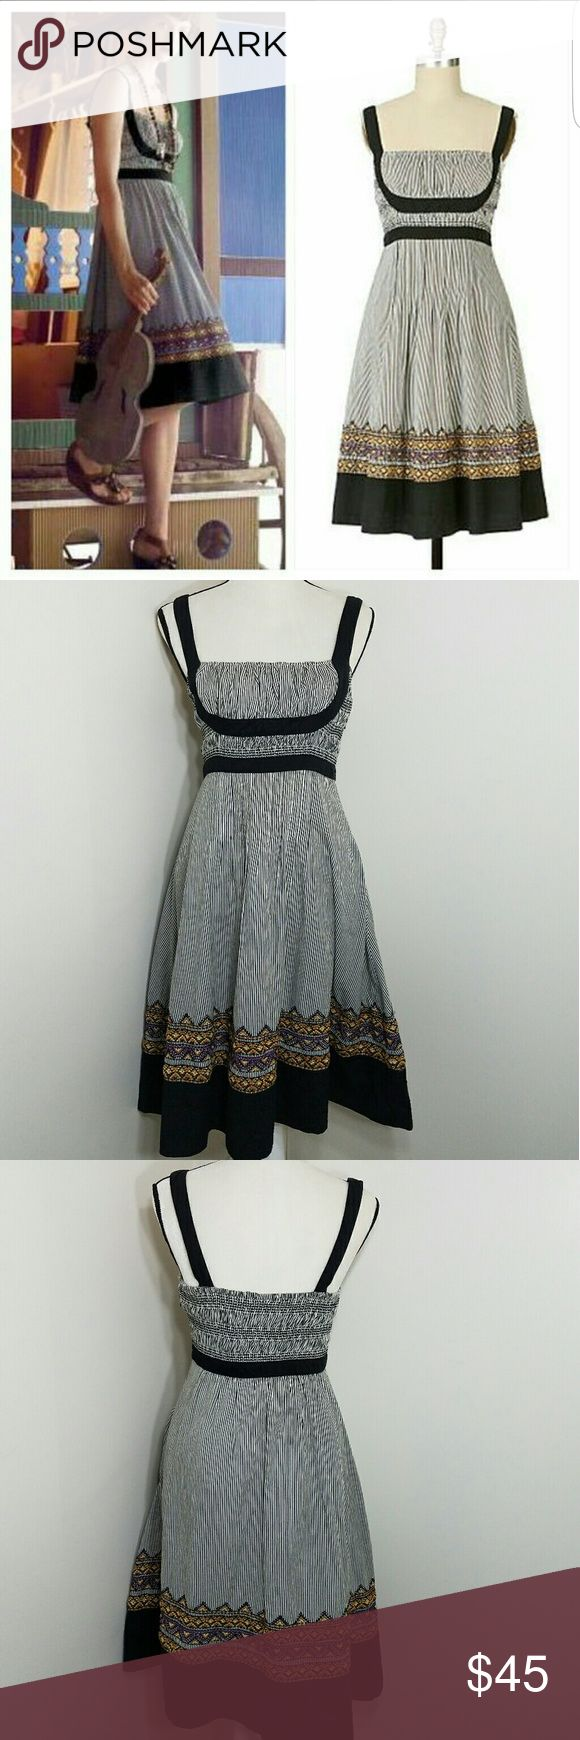 Anthropologie Lithe Fiddler's song Dress Anthropologie Lithe Fiddler's song Dress. Embroidered, smocked. Size 4. Side zip, fully lined. Gently used, good condition. Shows some signs of wear from cleaning but no tears holes or stains. Anthropologie Dresses Midi